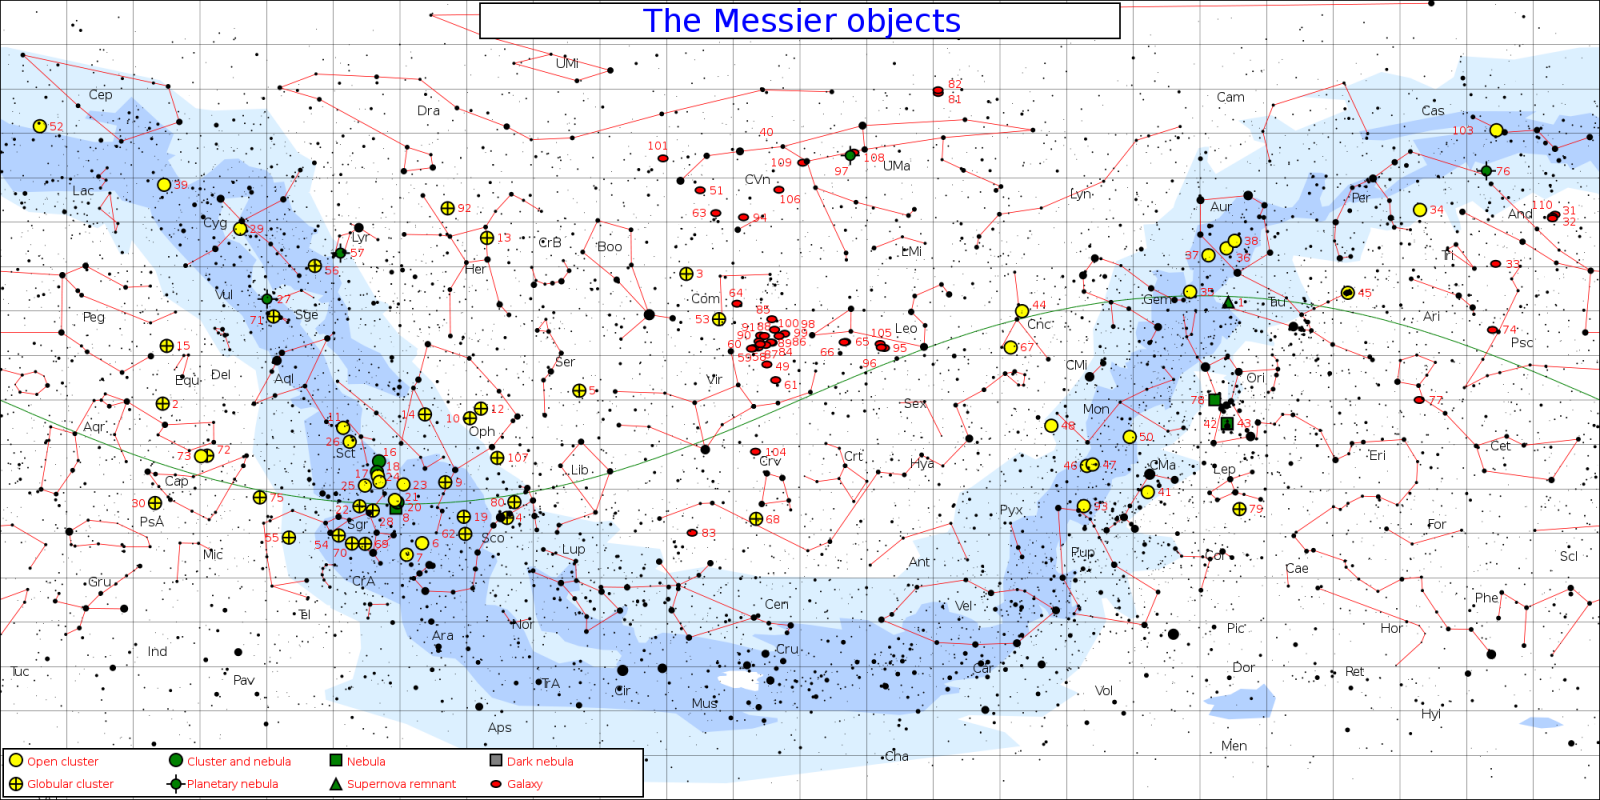 Messier-Objects.thumb.png.a6aea249beb422740637f1556c9ab004.png